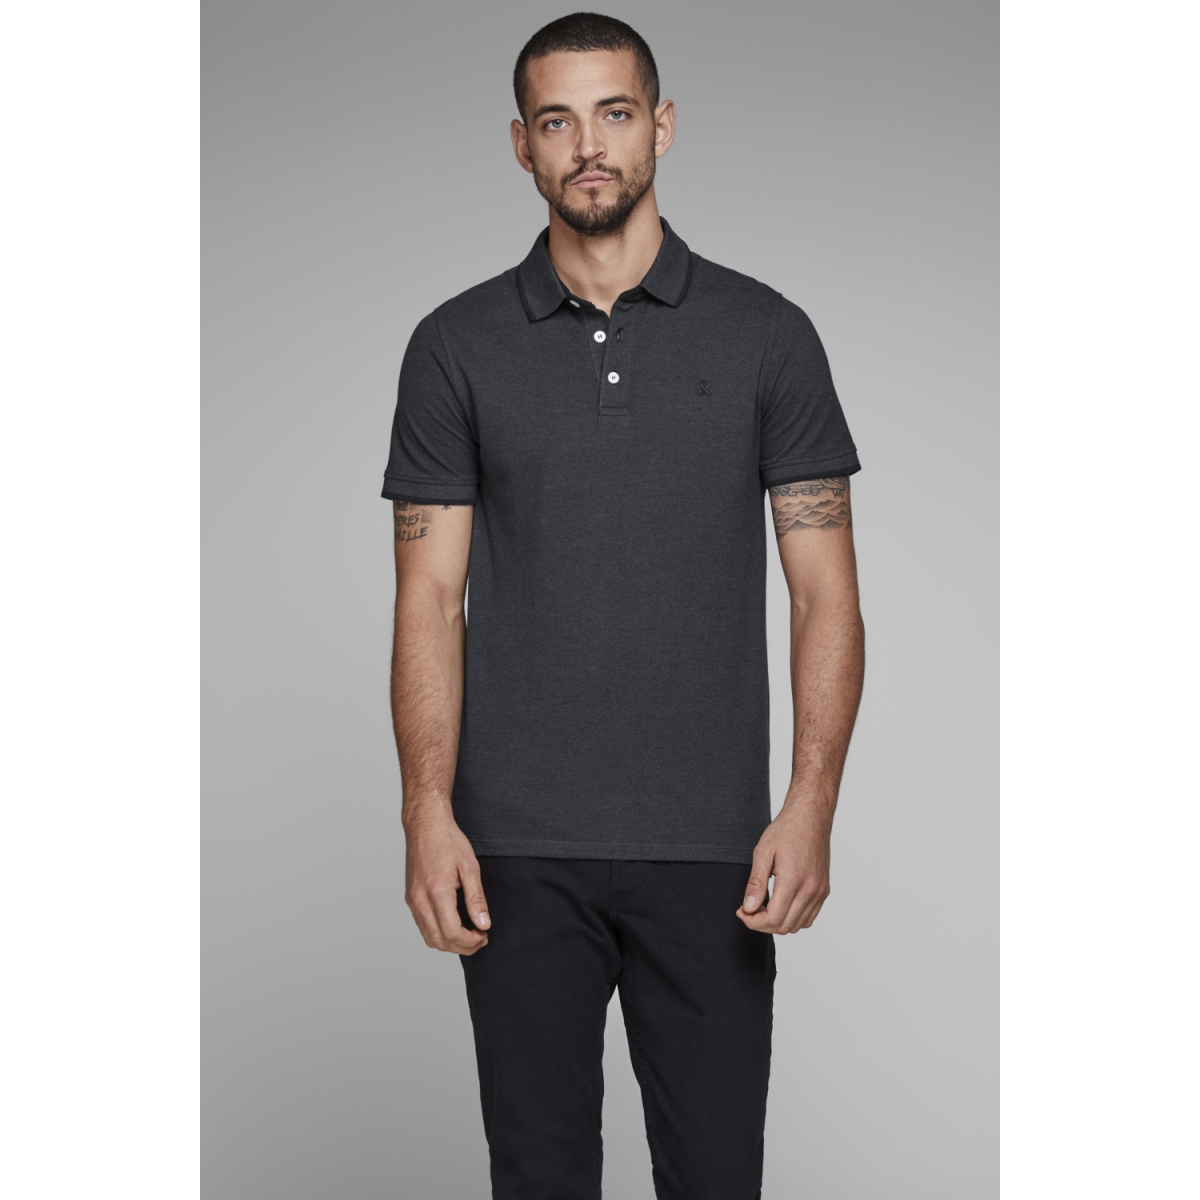 jjepaulos polo ss noos 12136668 jack & jones polo dark grey melange/slim fit